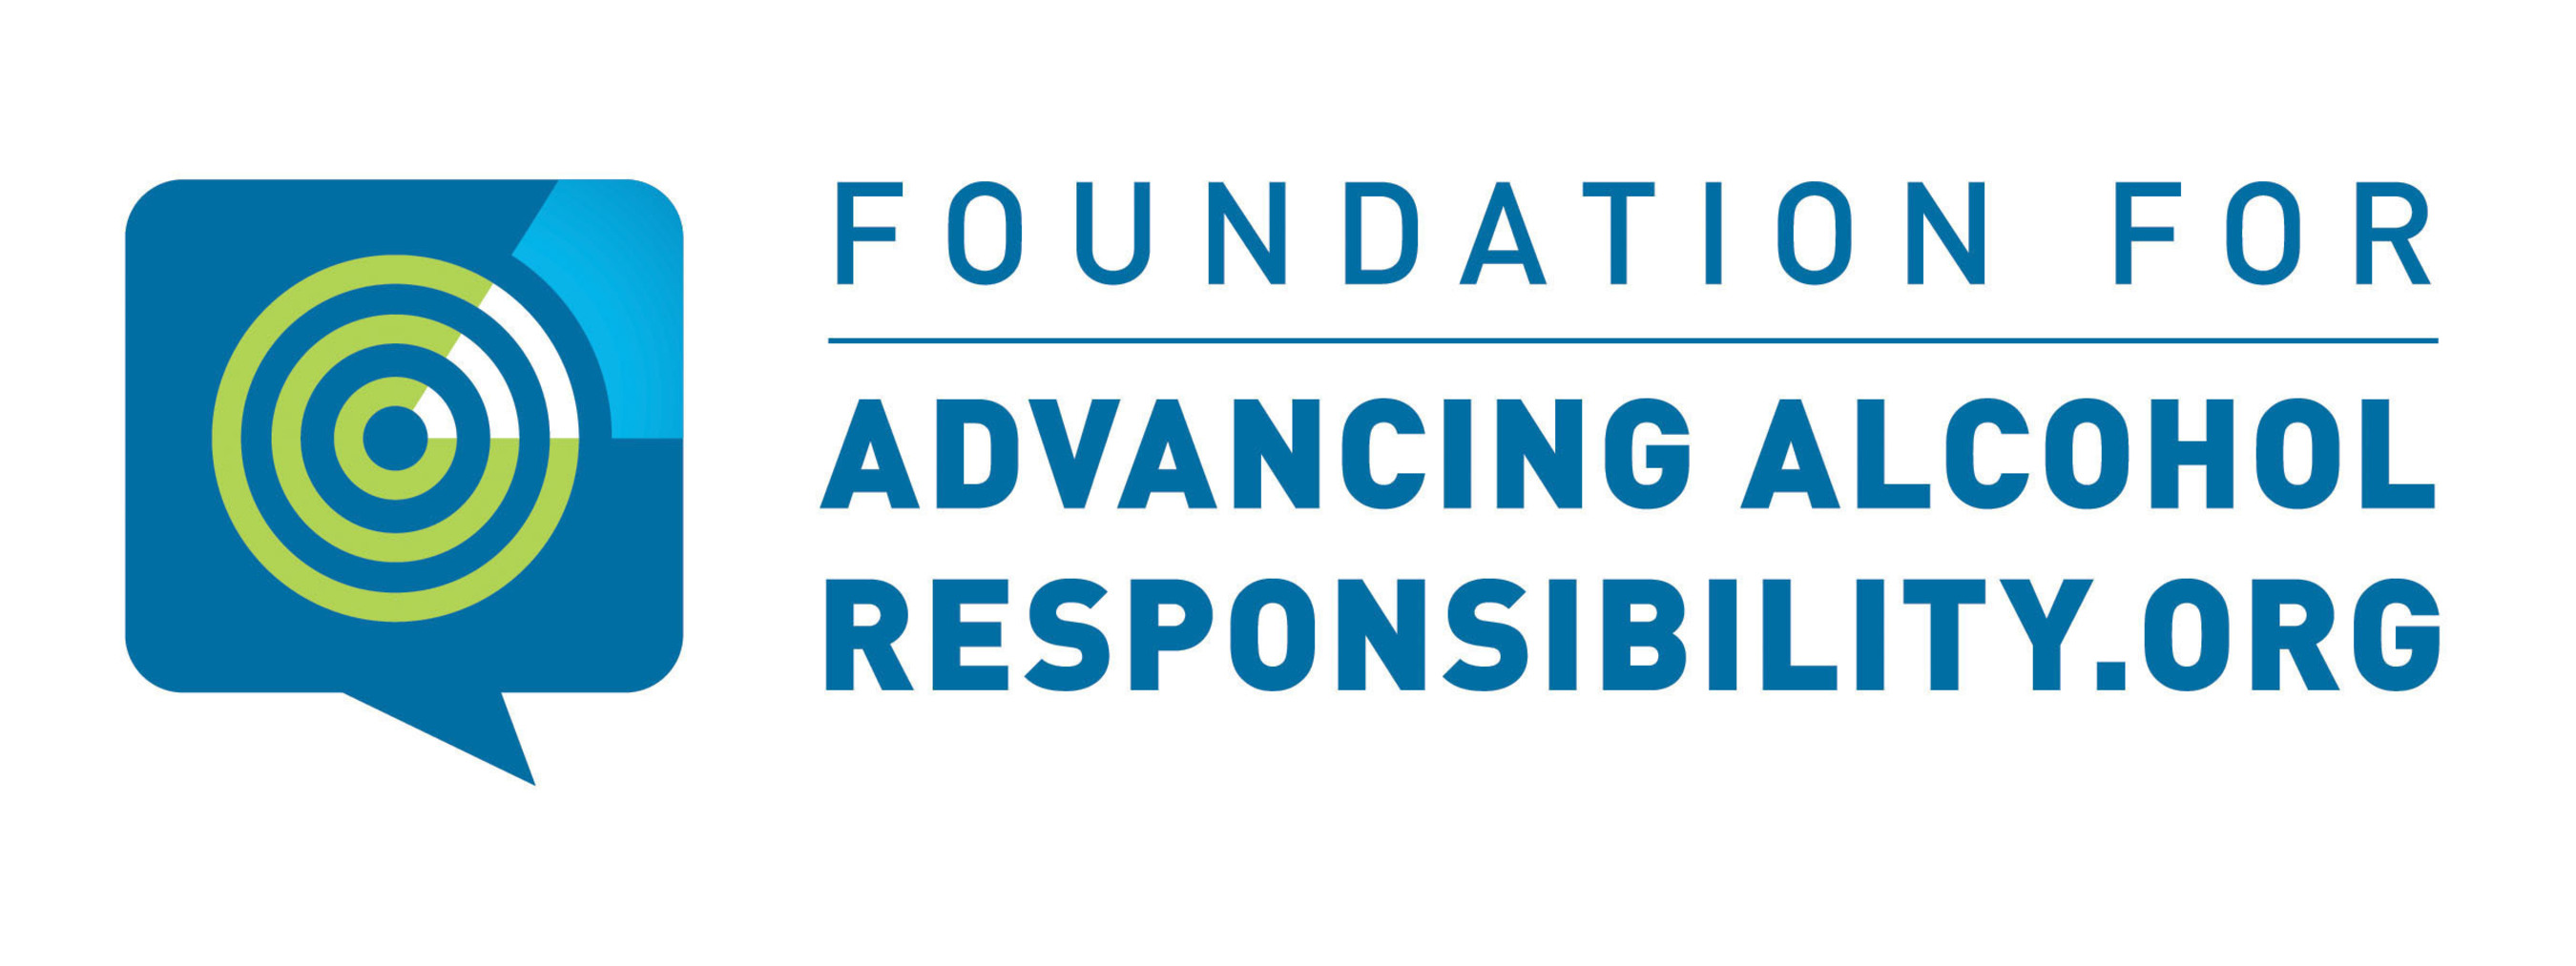 Foundation for Advancing Alcohol Responsibility Logo.